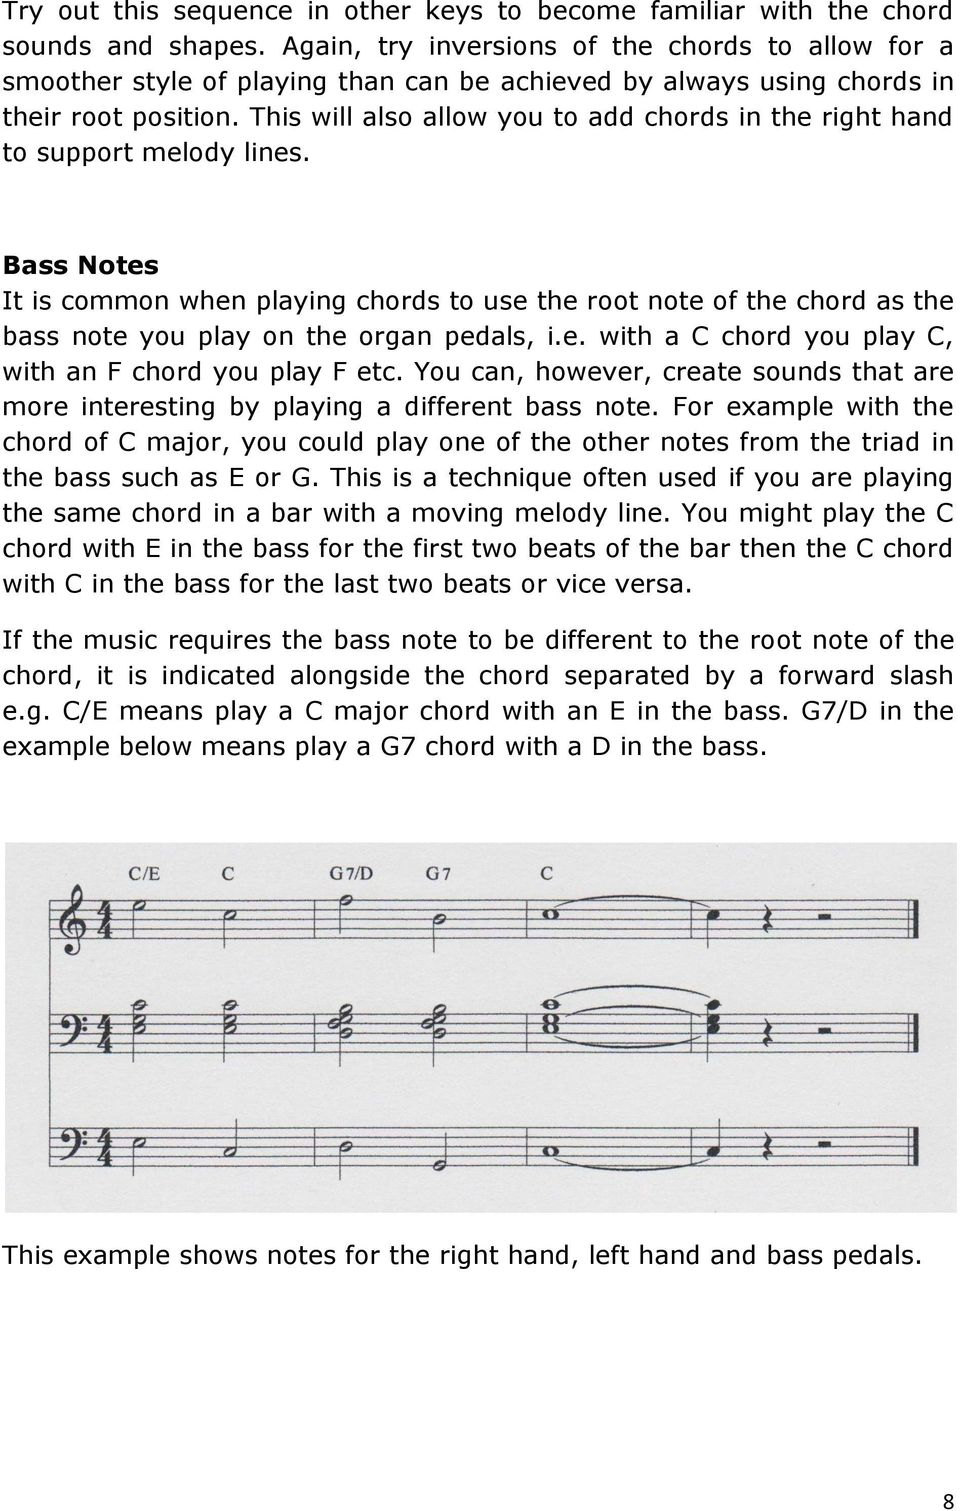 This will also allow you to add chords in the right hand to support melody lines.